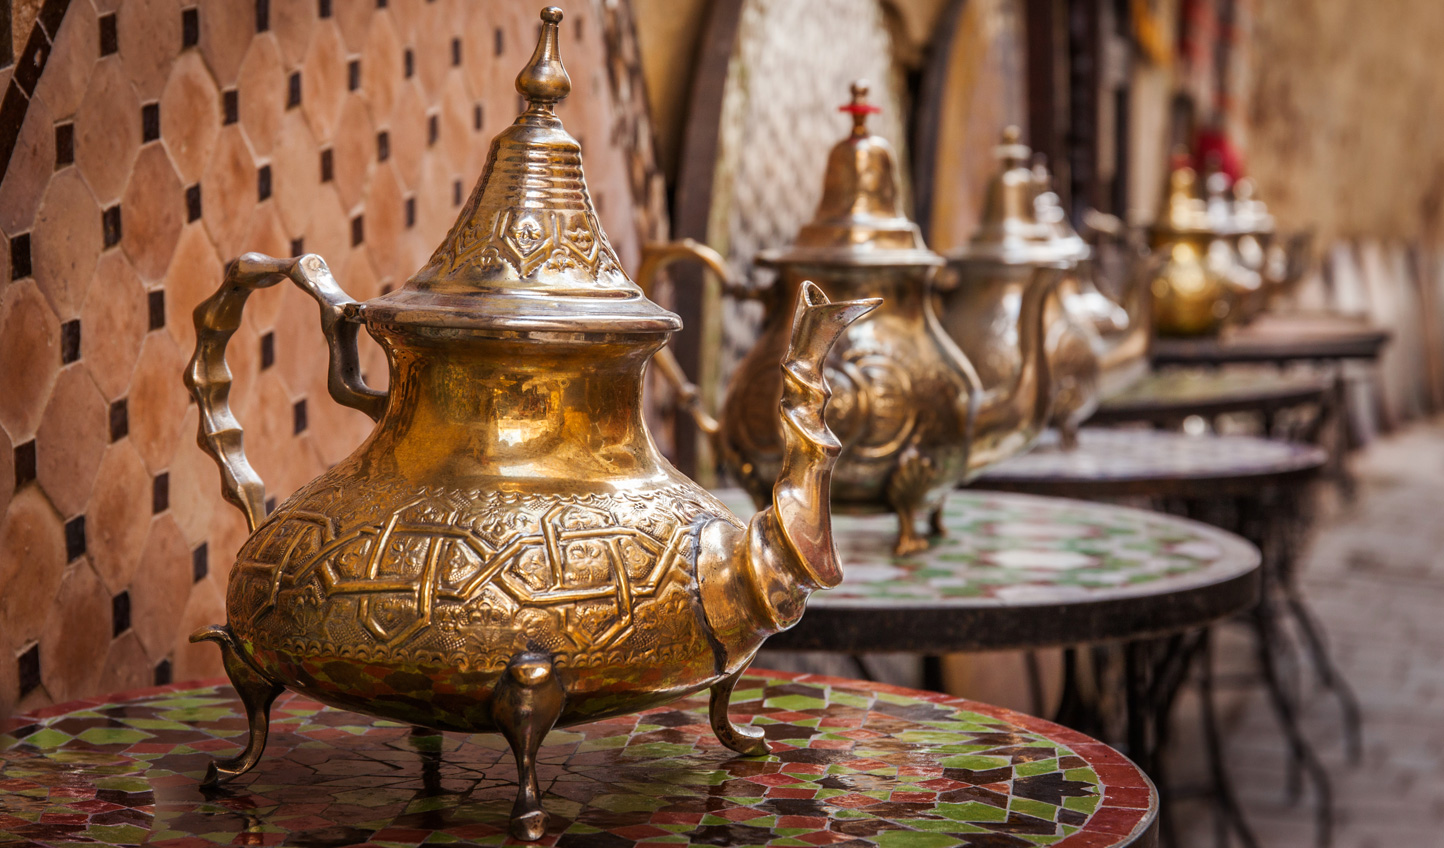 Taste your way through the souk in Fes